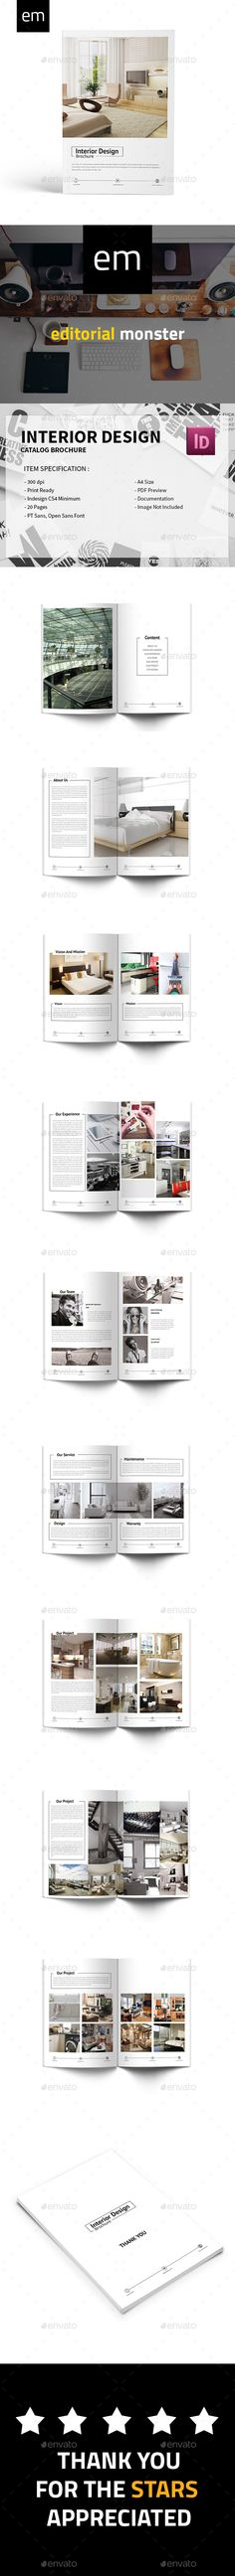 Interior Design Brochure Template InDesign INDD. Download here: http://graphicriver.net/item/interior-design-brochure/16150075?ref=ksioks